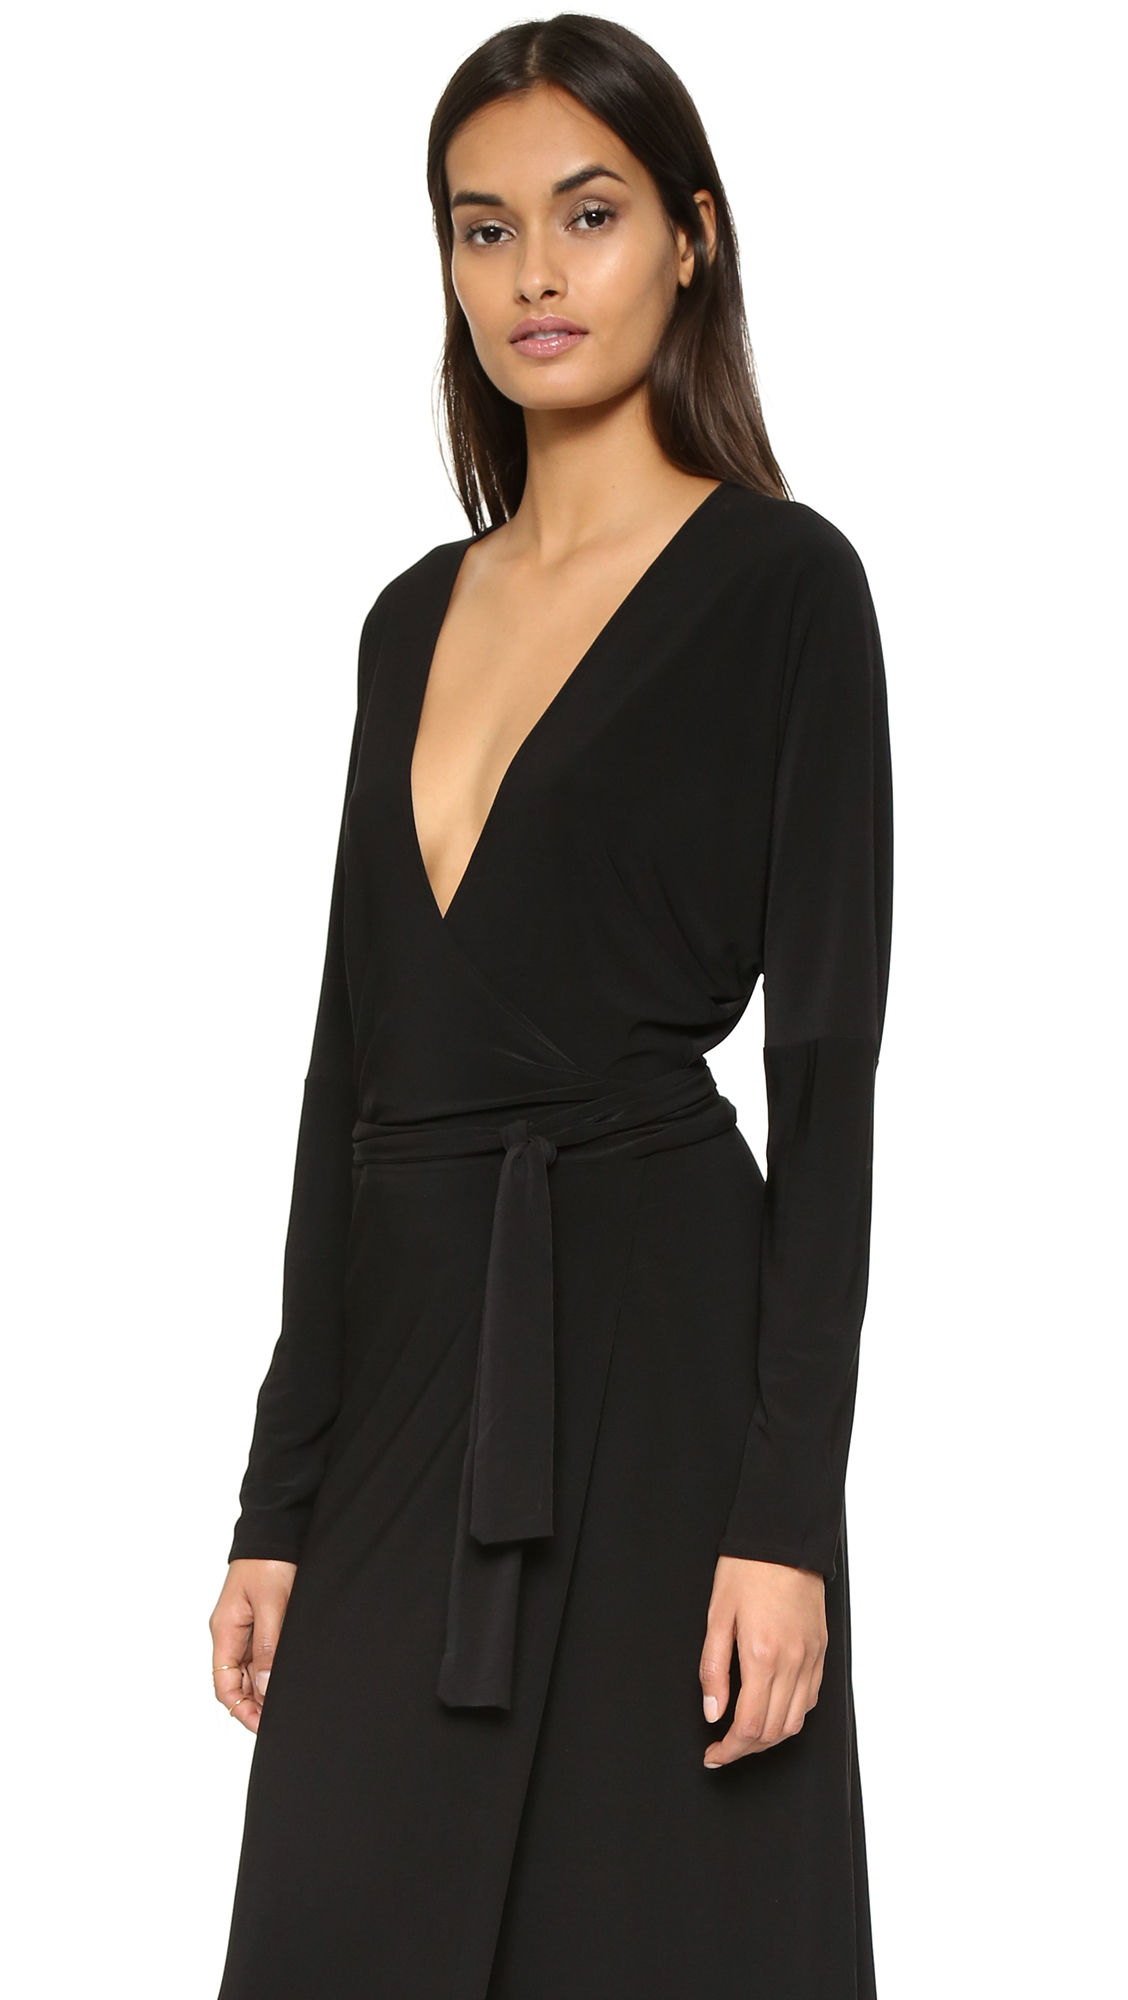 4955814d78b48f Norma Kamali Kamali Kulture Dolman Wrap Dress in Black - Lyst